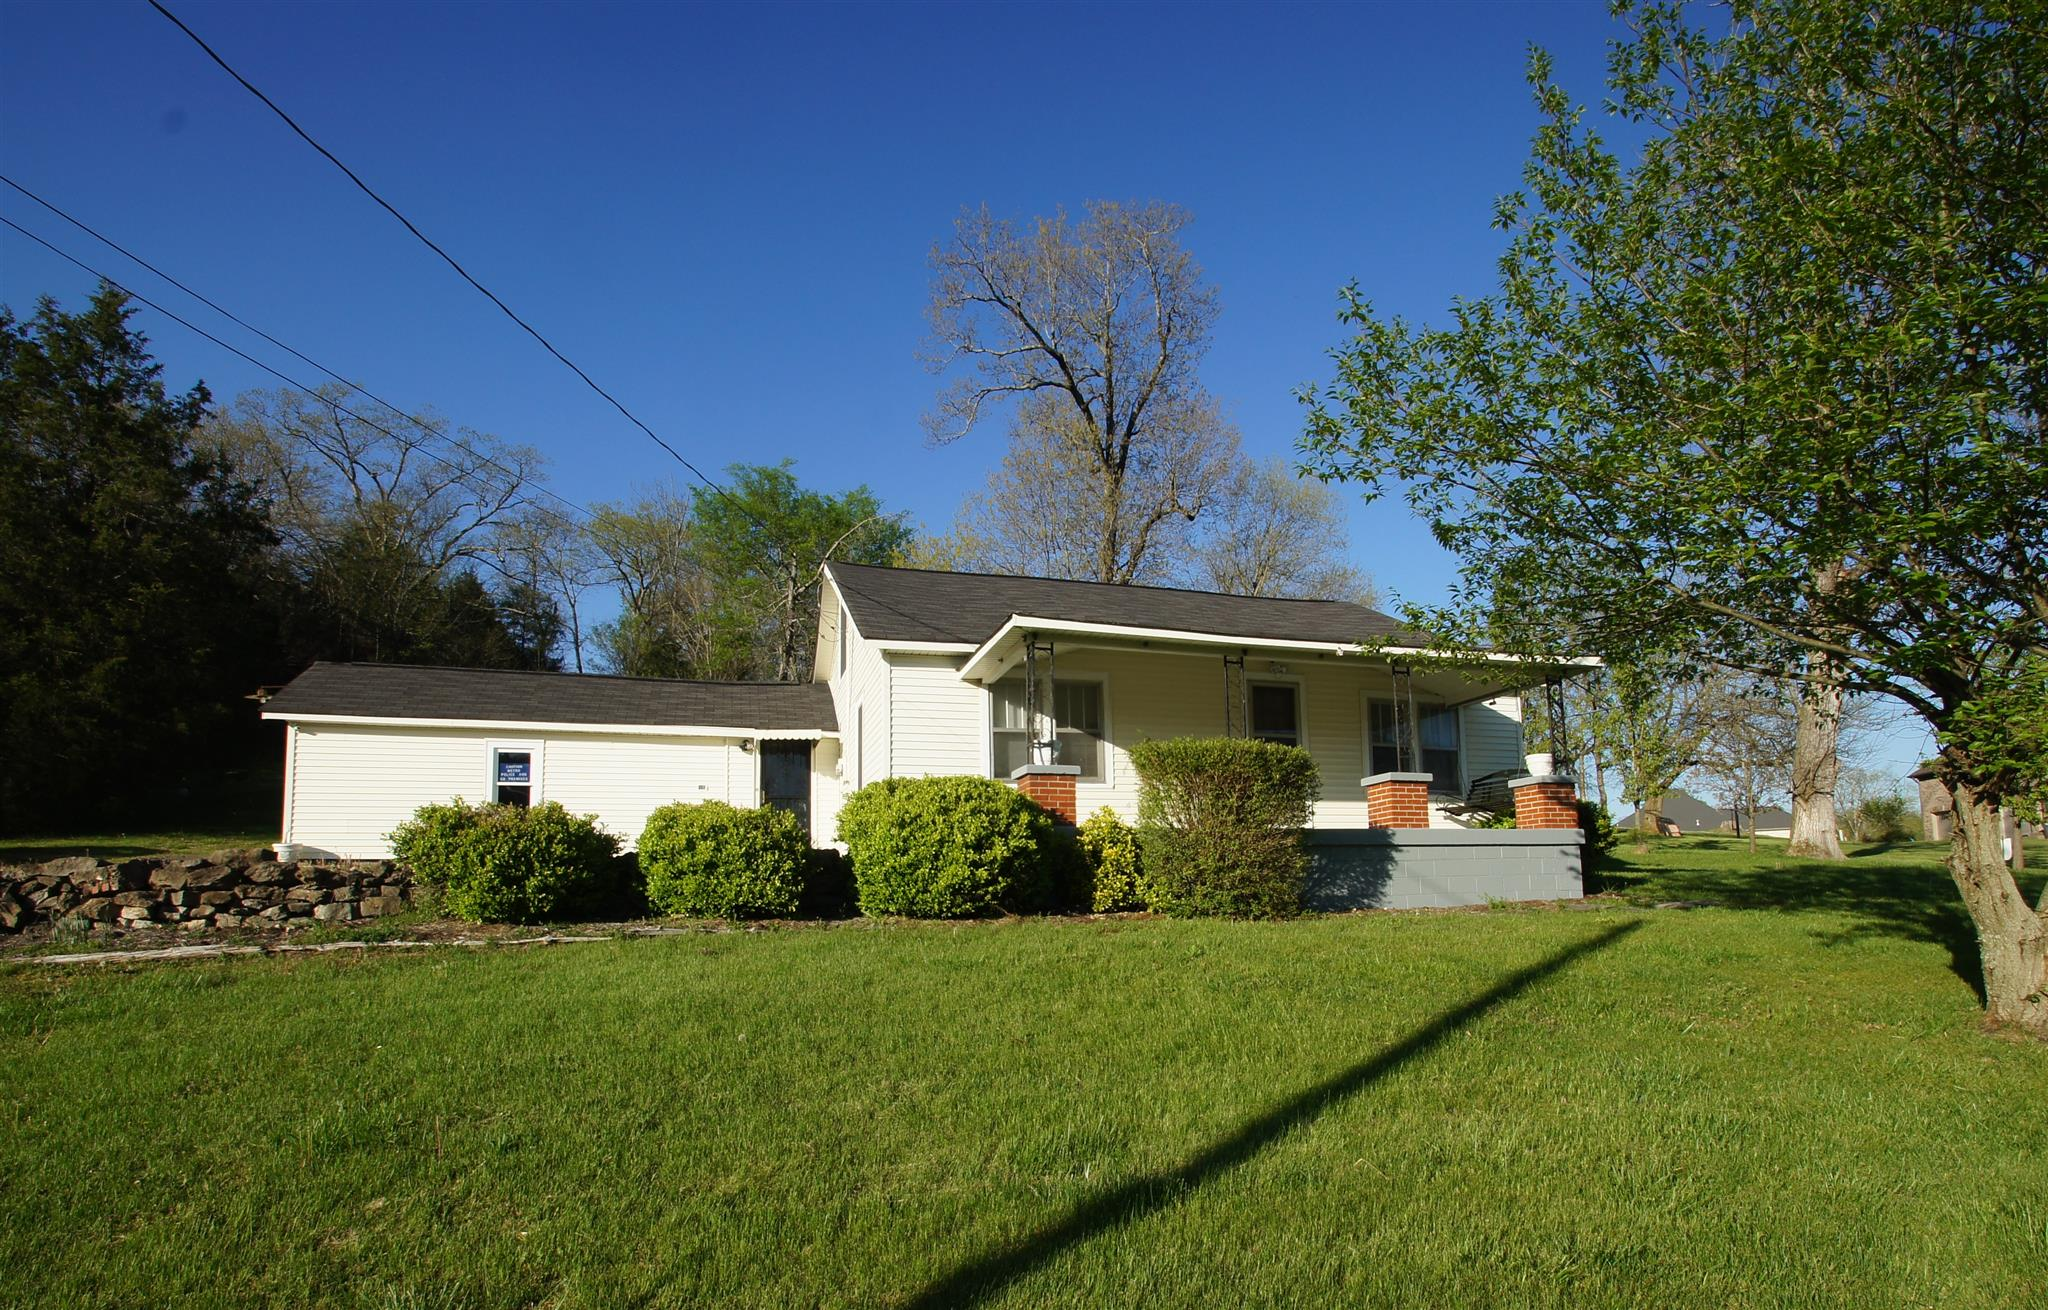 Photo of 1535 Springfield Hwy  Goodlettsville  TN